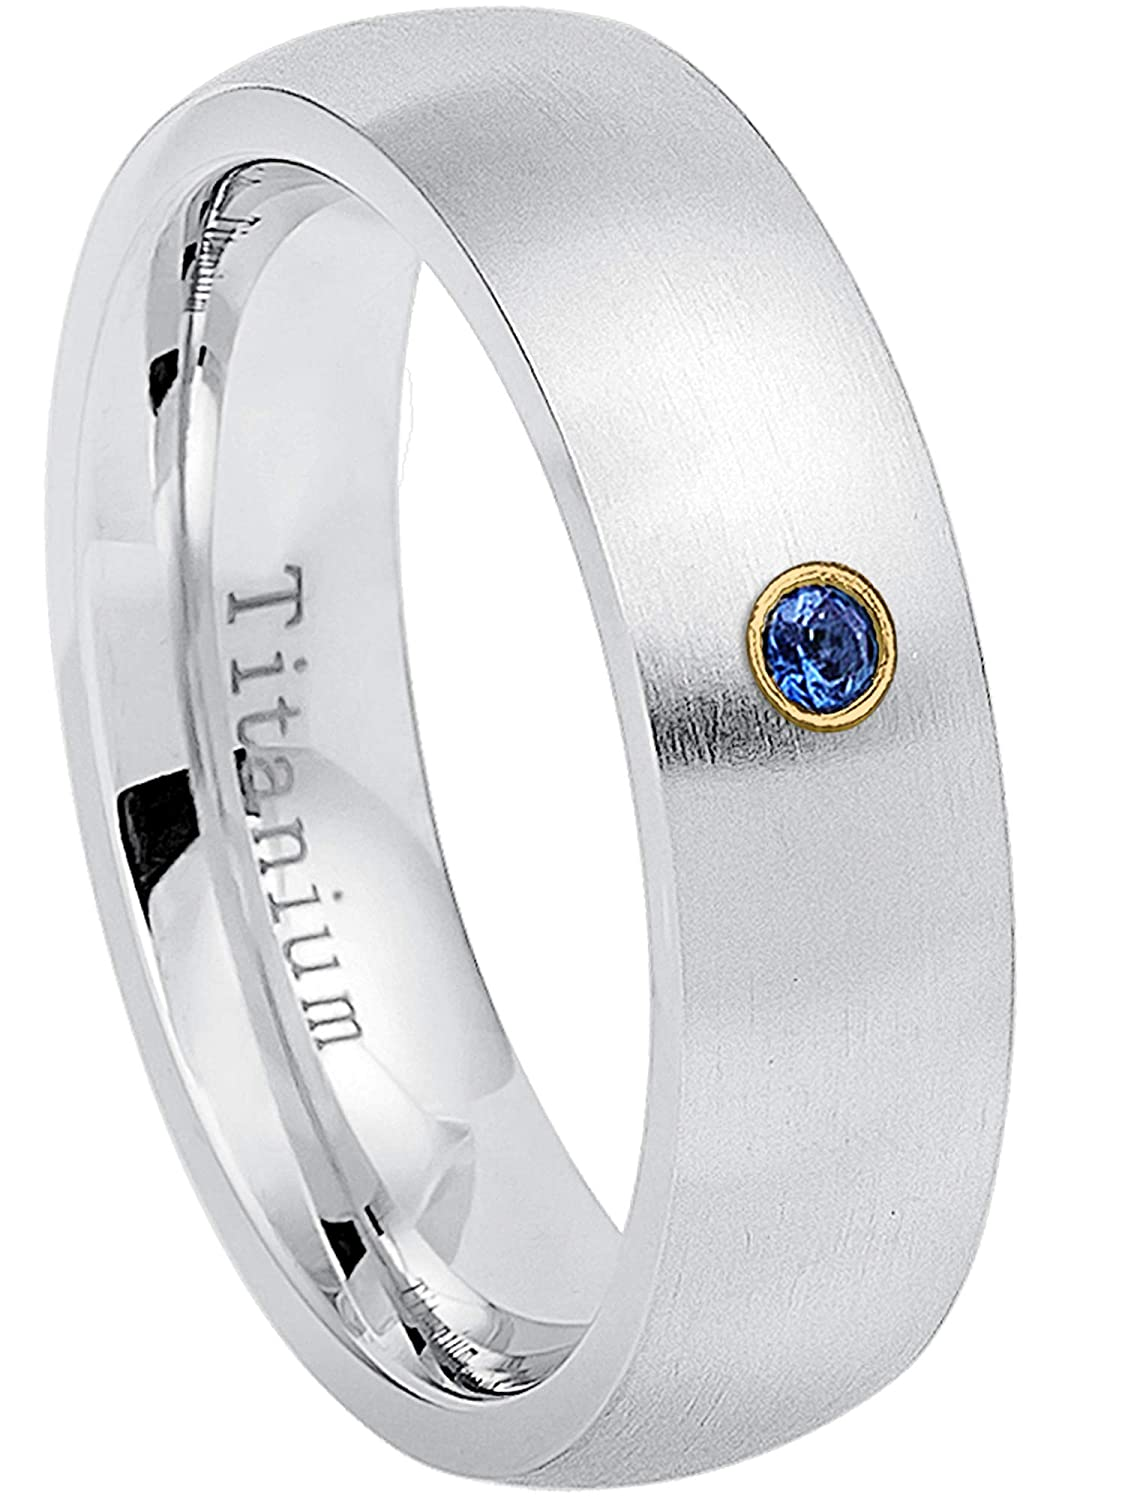 6MM Brushed Finish Comfort Fit Classic Dome White Wedding Band September Birthstone Ring 0.07ct Blue Sapphire Solitaire Titanium Ring 9